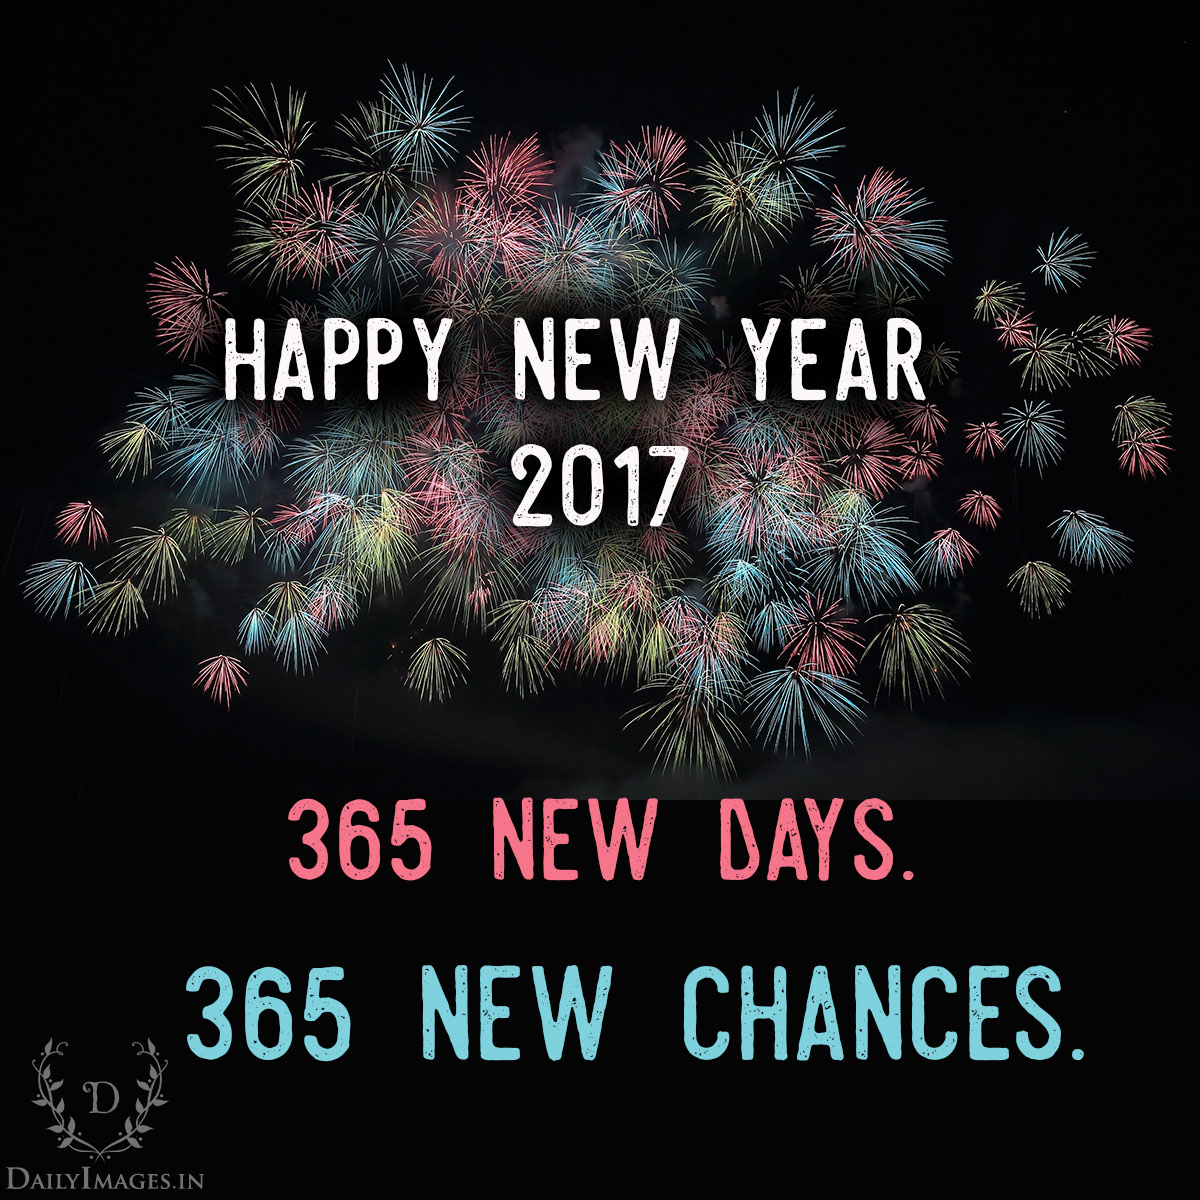 365 New Days 365 New Chances Happy New Year Daily Images